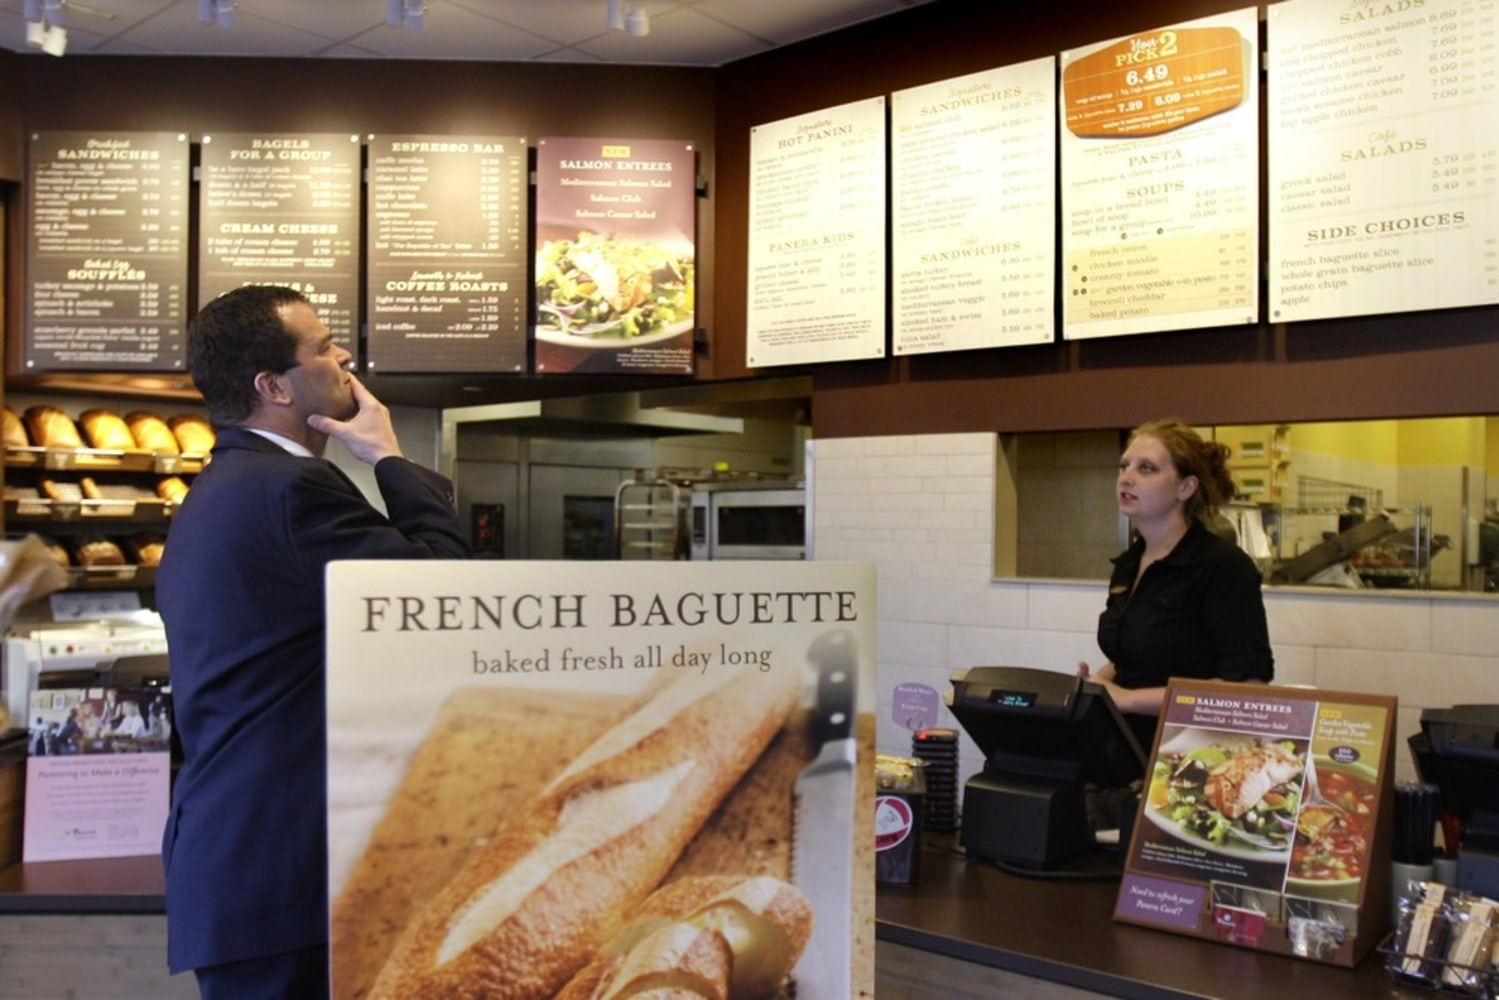 Panera shelves pay-what-you-can idea - NBC News